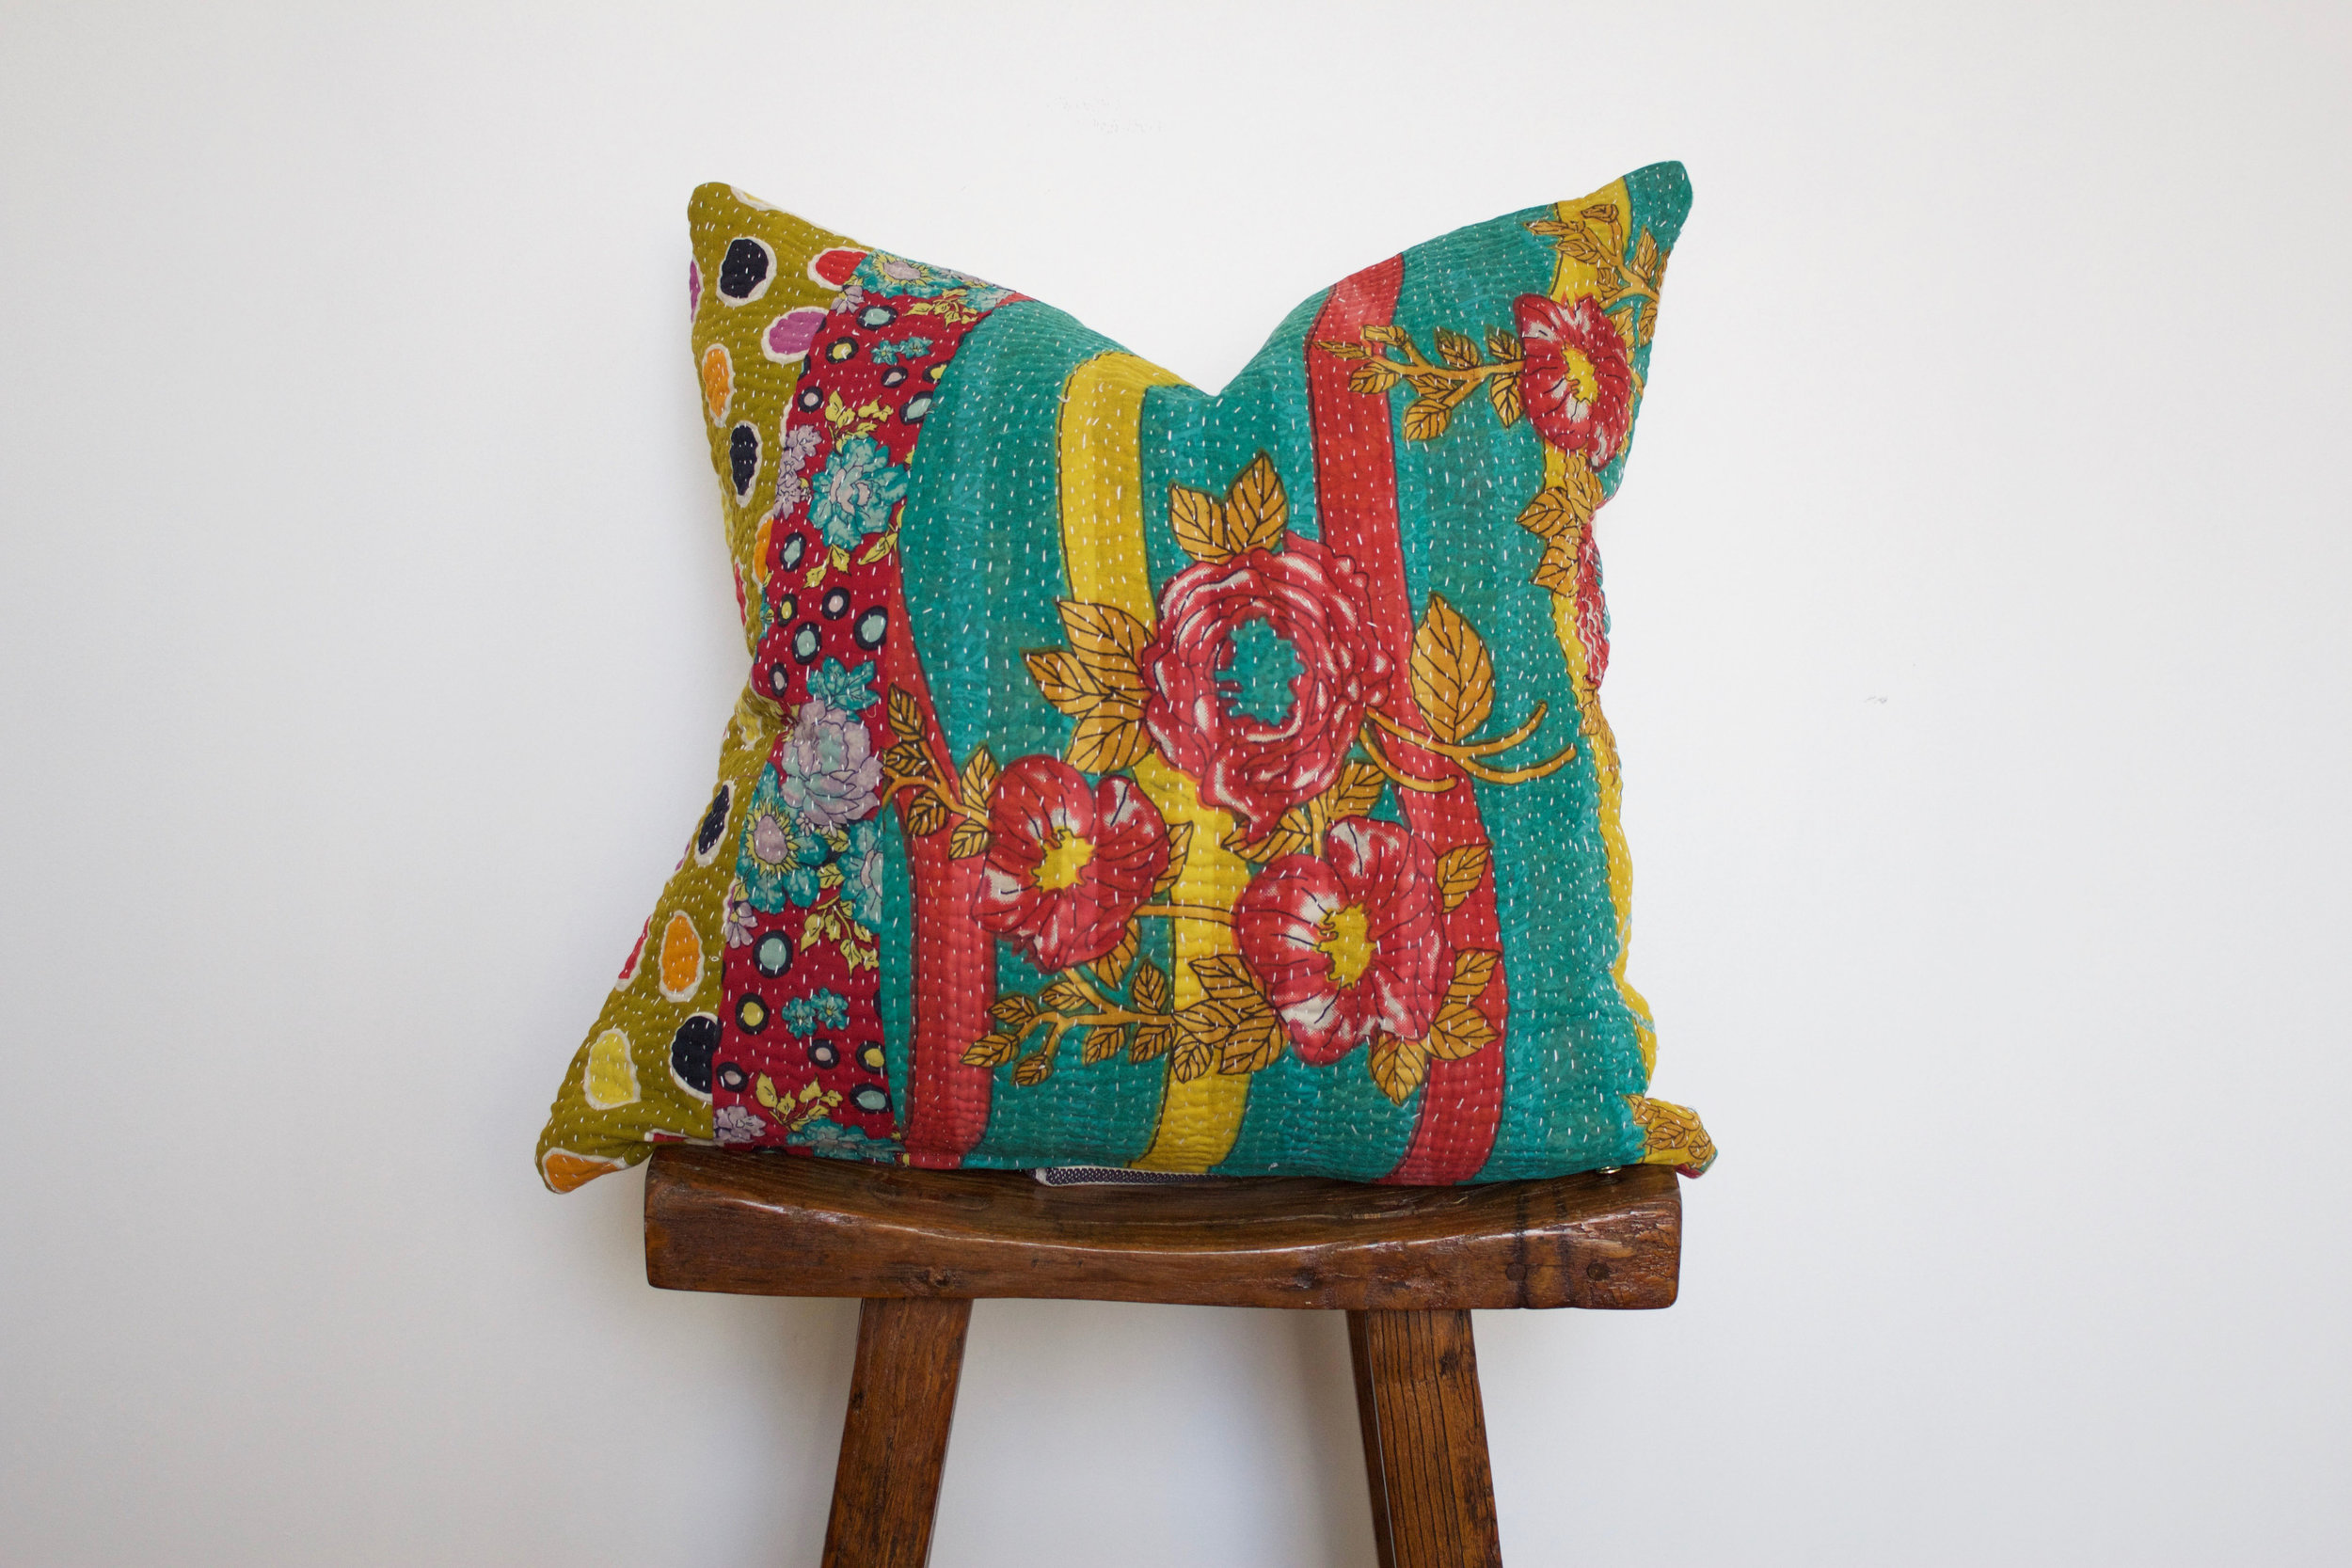 Rosie - No. 218   300 RMB  Pillow cover is made from worn sari fabric sourced from India  Size: Roughly 50x50 cm  Pillow back is made from a neutral cotton/linen blend  Zipper on bottom of pillow  Down insert included  Dry clean only